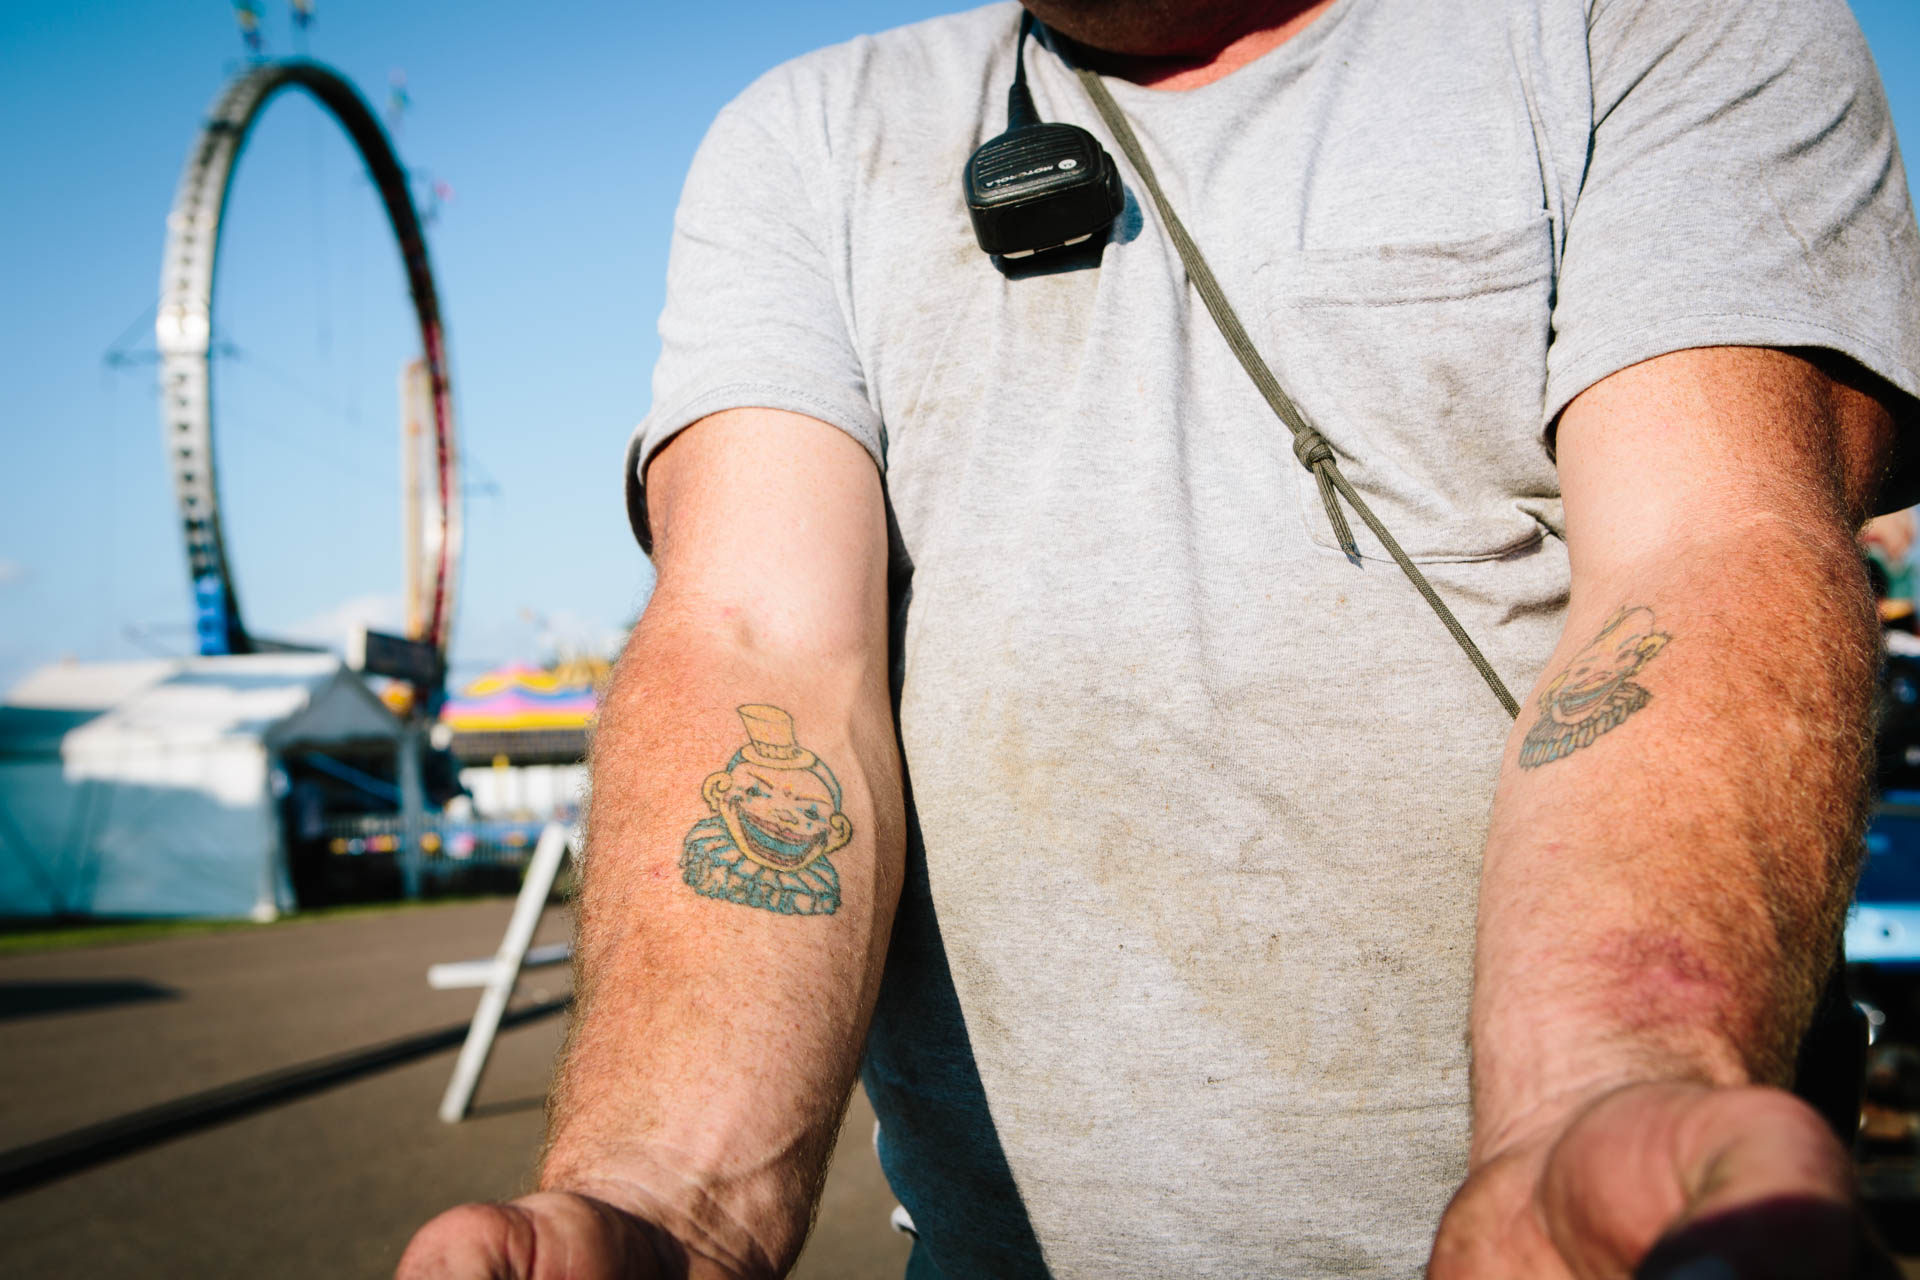 northern-wisconsin-carnival-worker-forearm-clown-tattoos-chippewa-falls-wi-7118